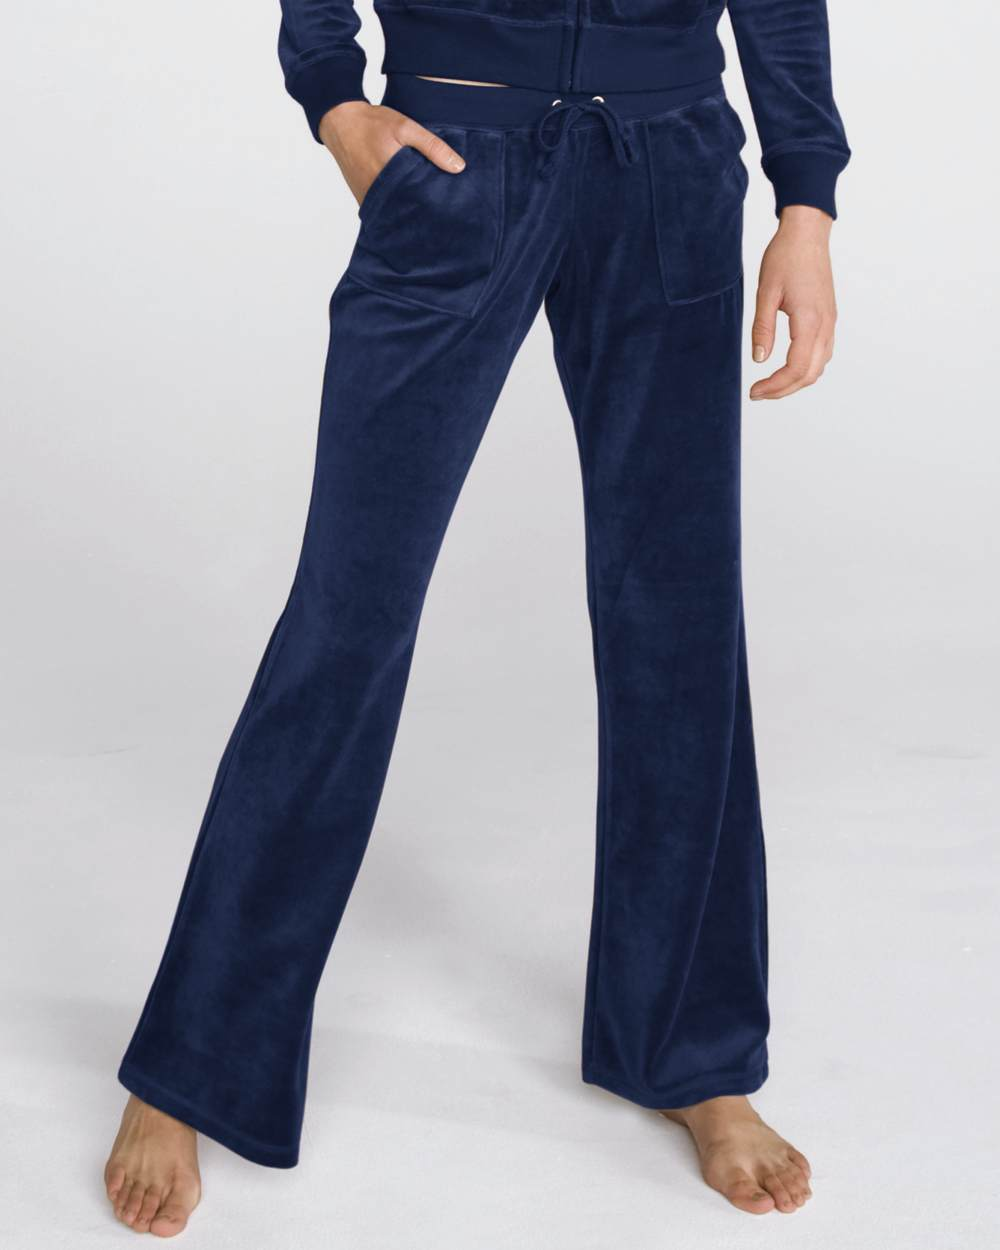 Bella 7817 velour pant